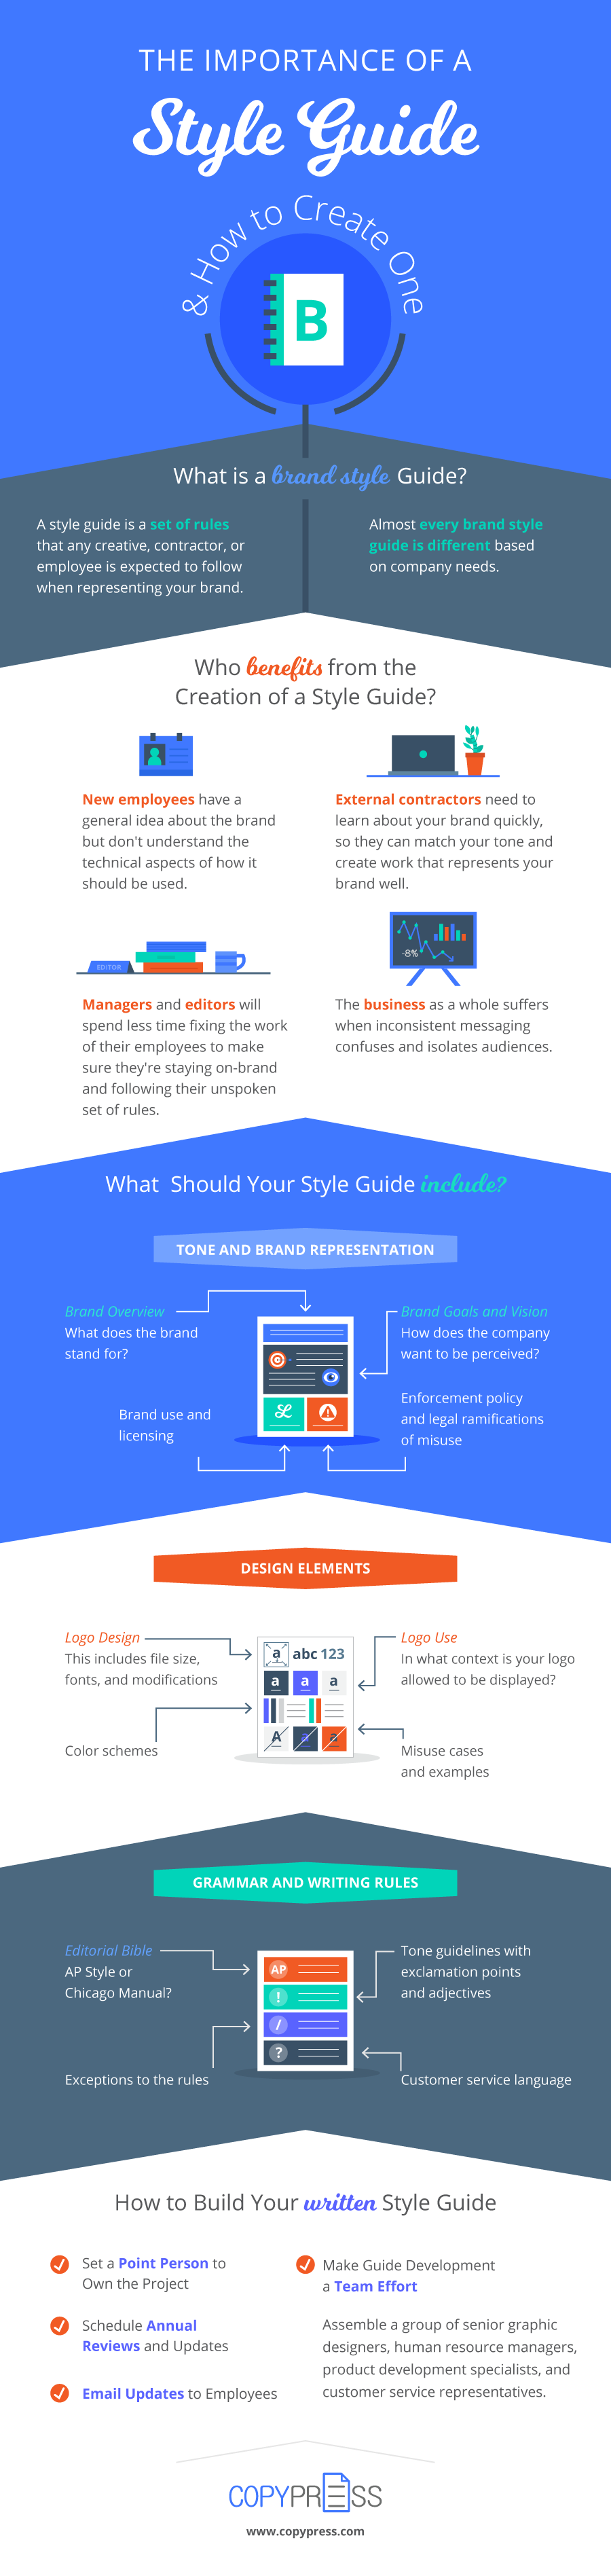 Understanding the Importance of a Style Guide